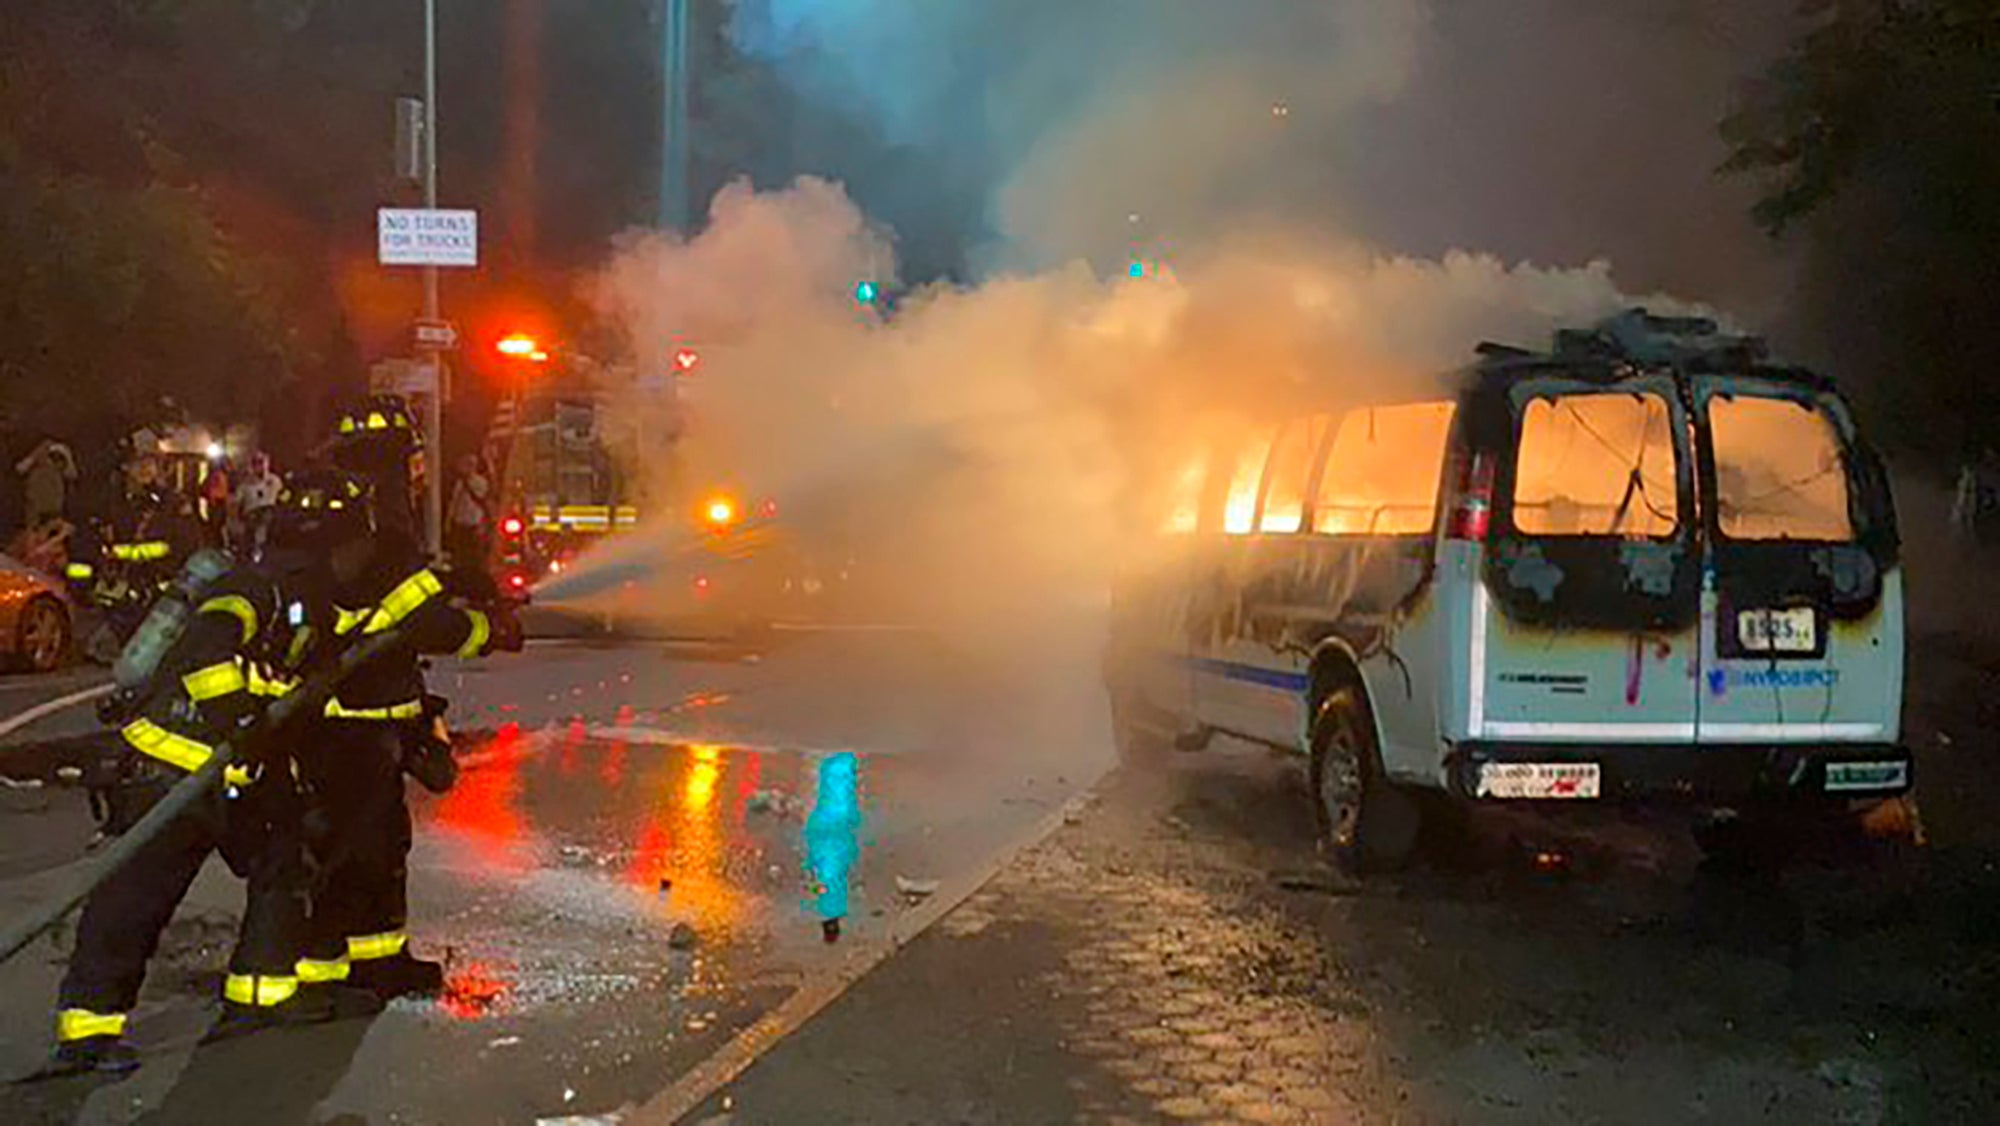 George Floyd protests: Woman faces attempted murder charge after police cruiser hit with Molotov cocktail